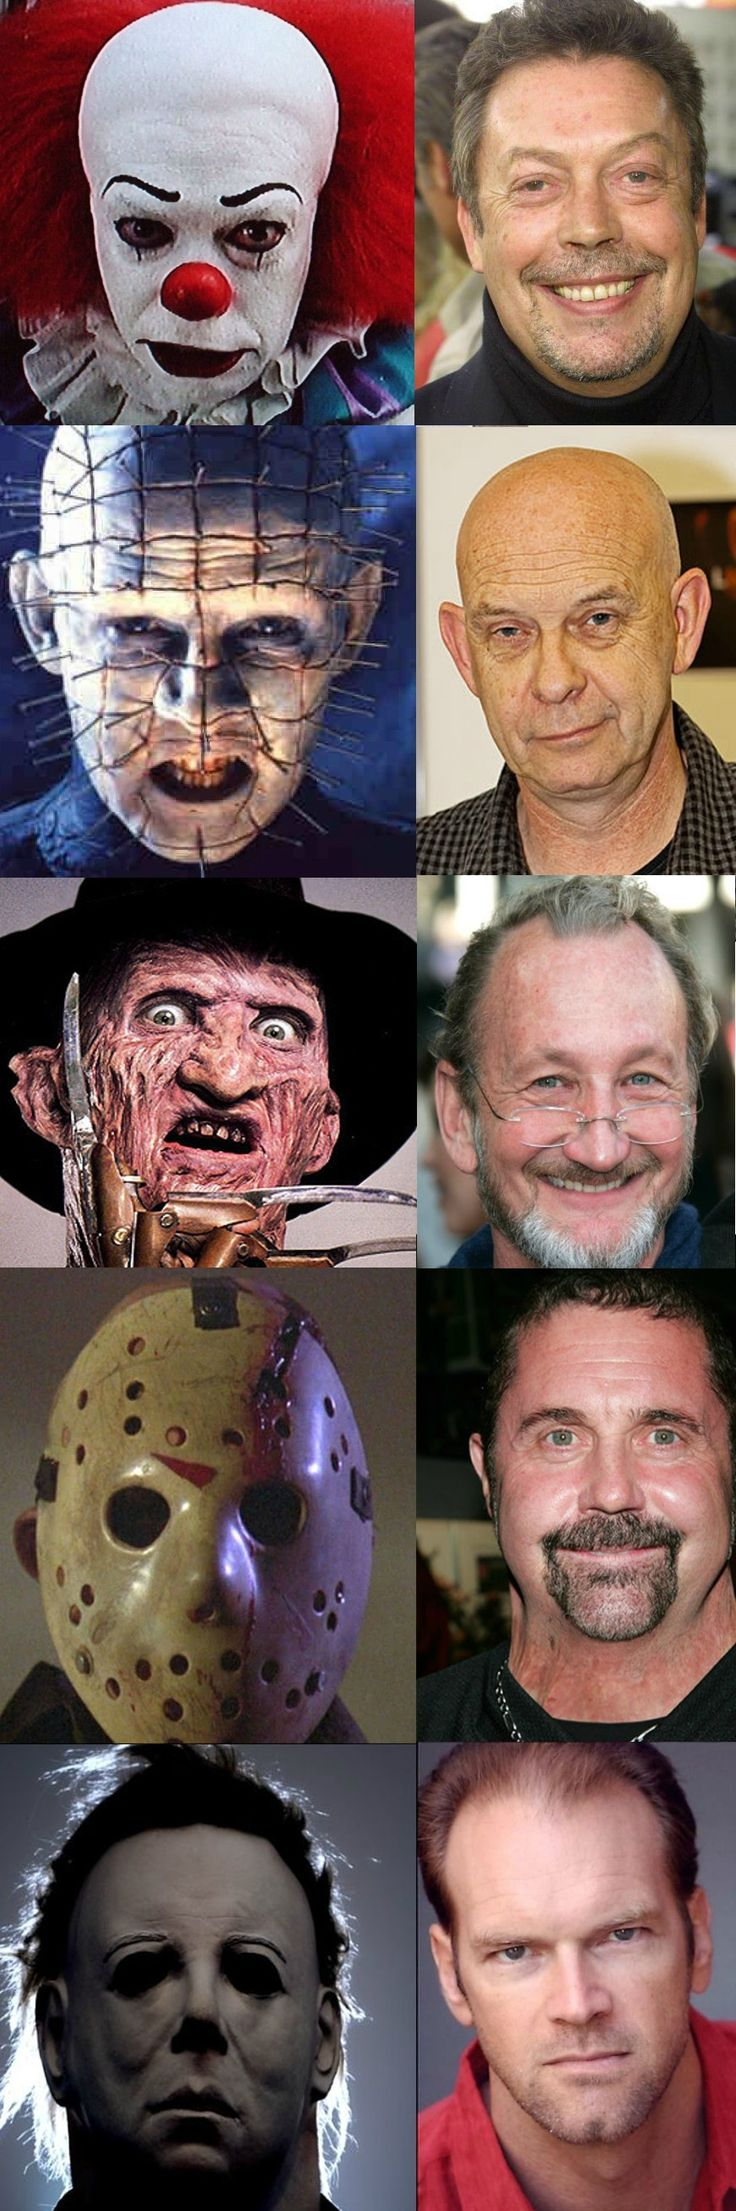 round character example in movies